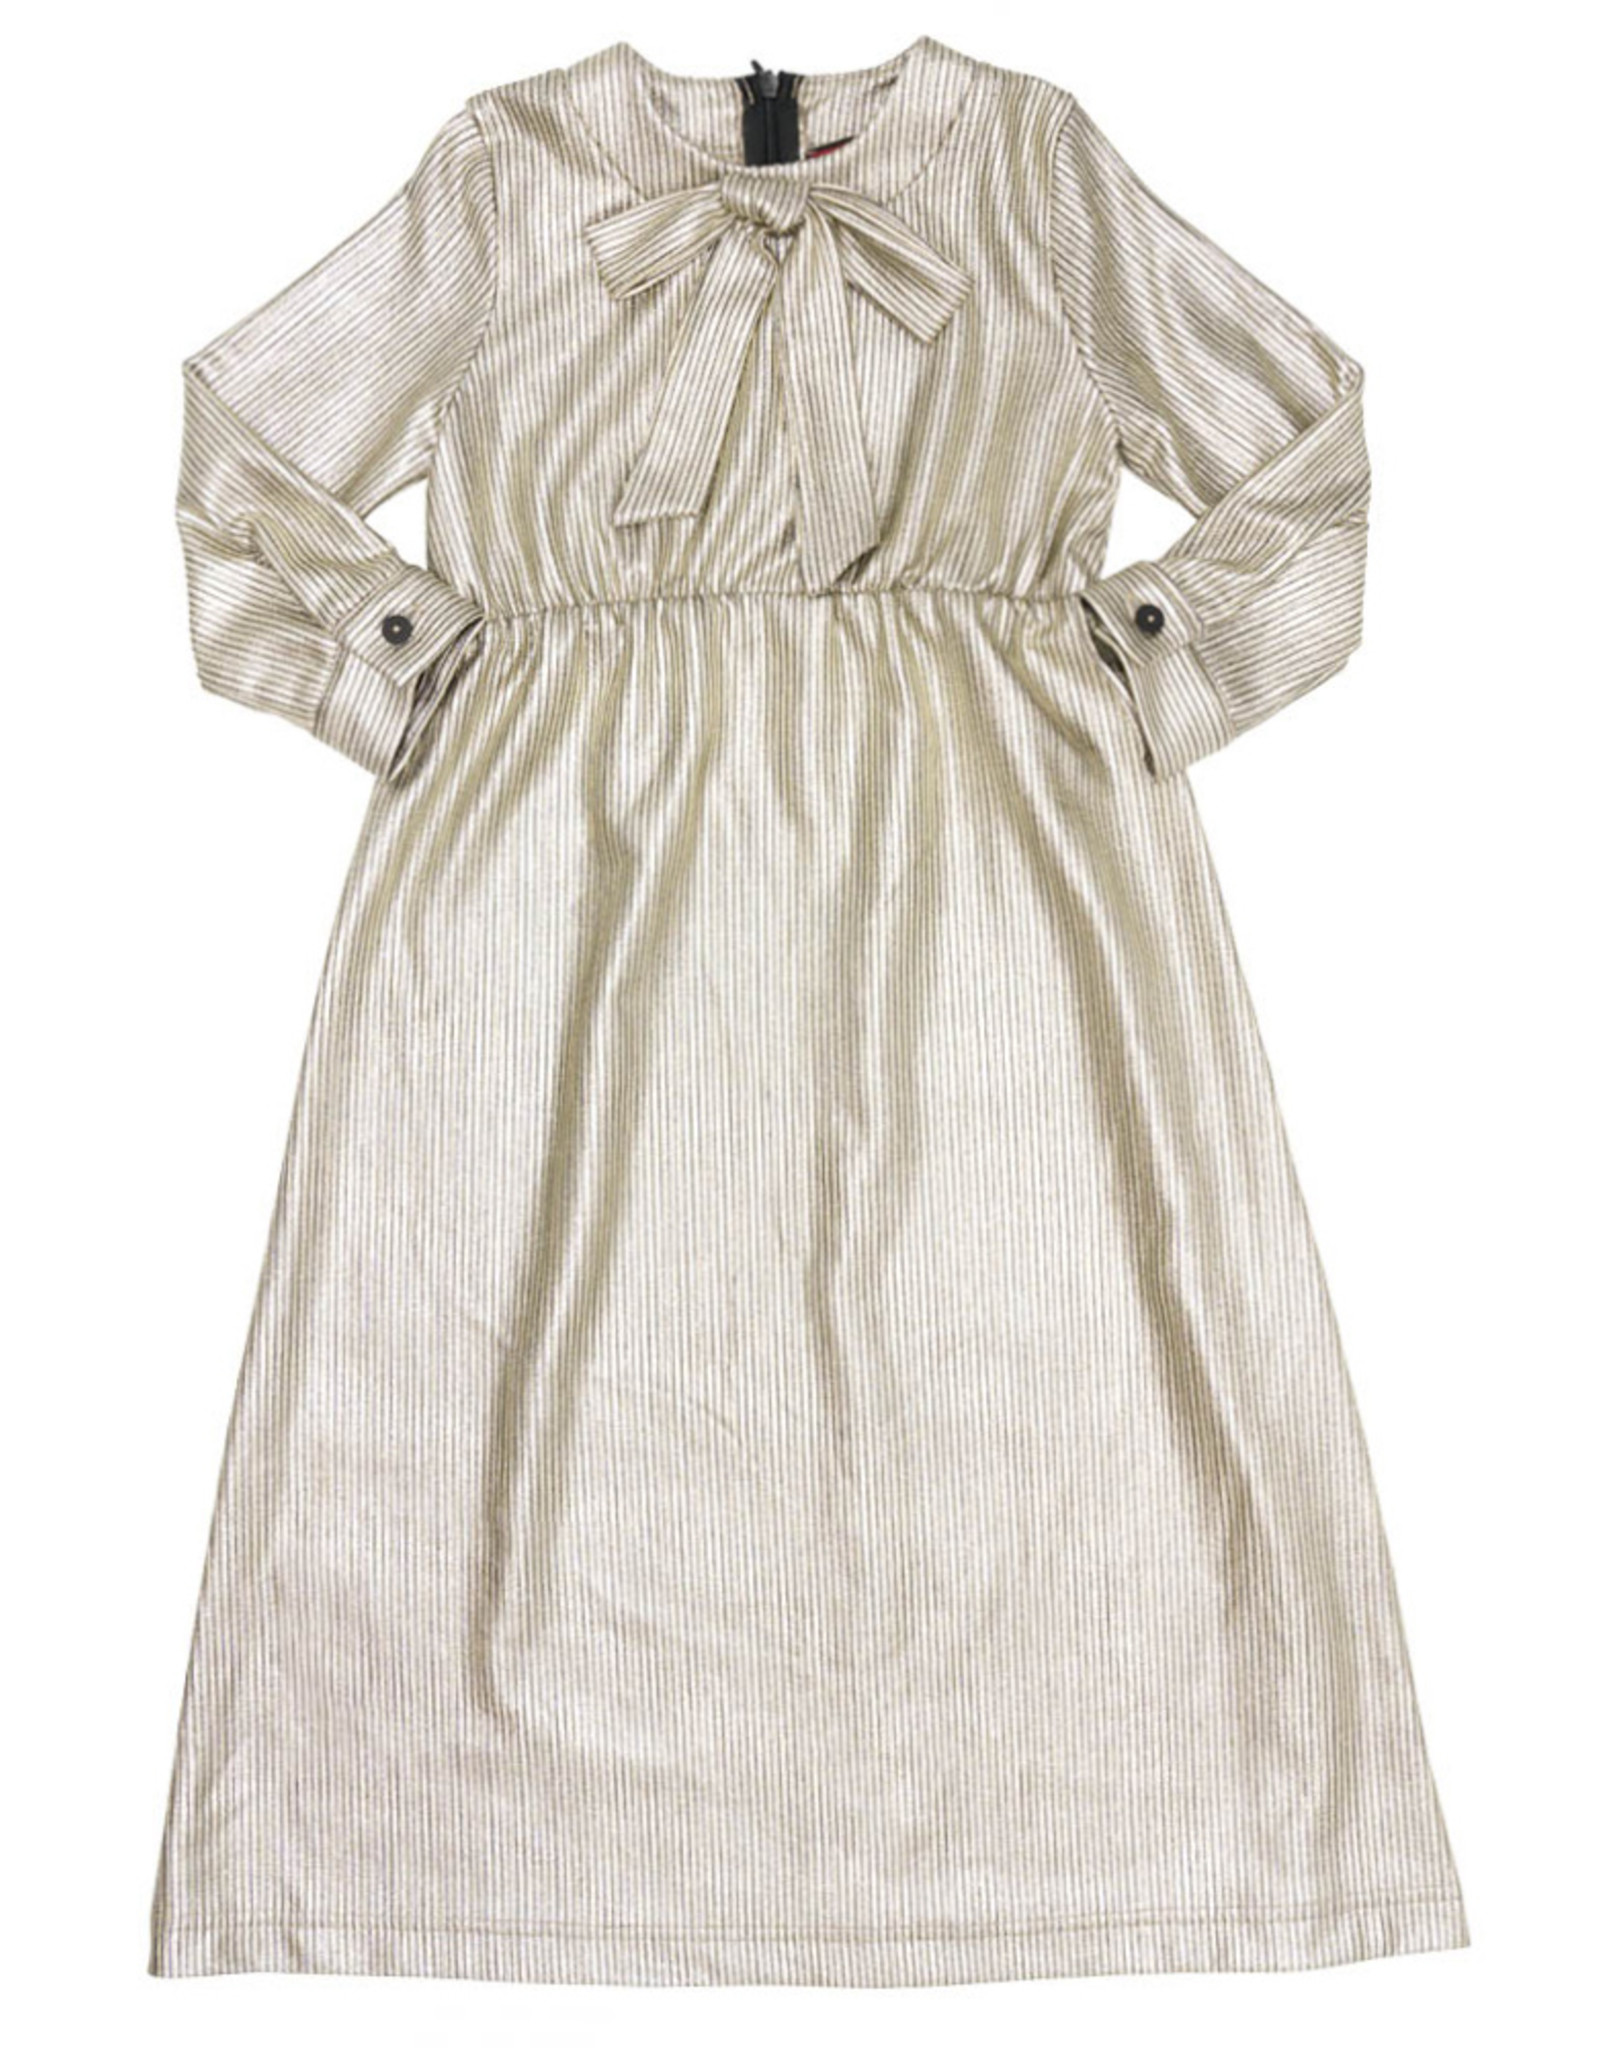 Lola Lola Vertical Striped Robe with Bow